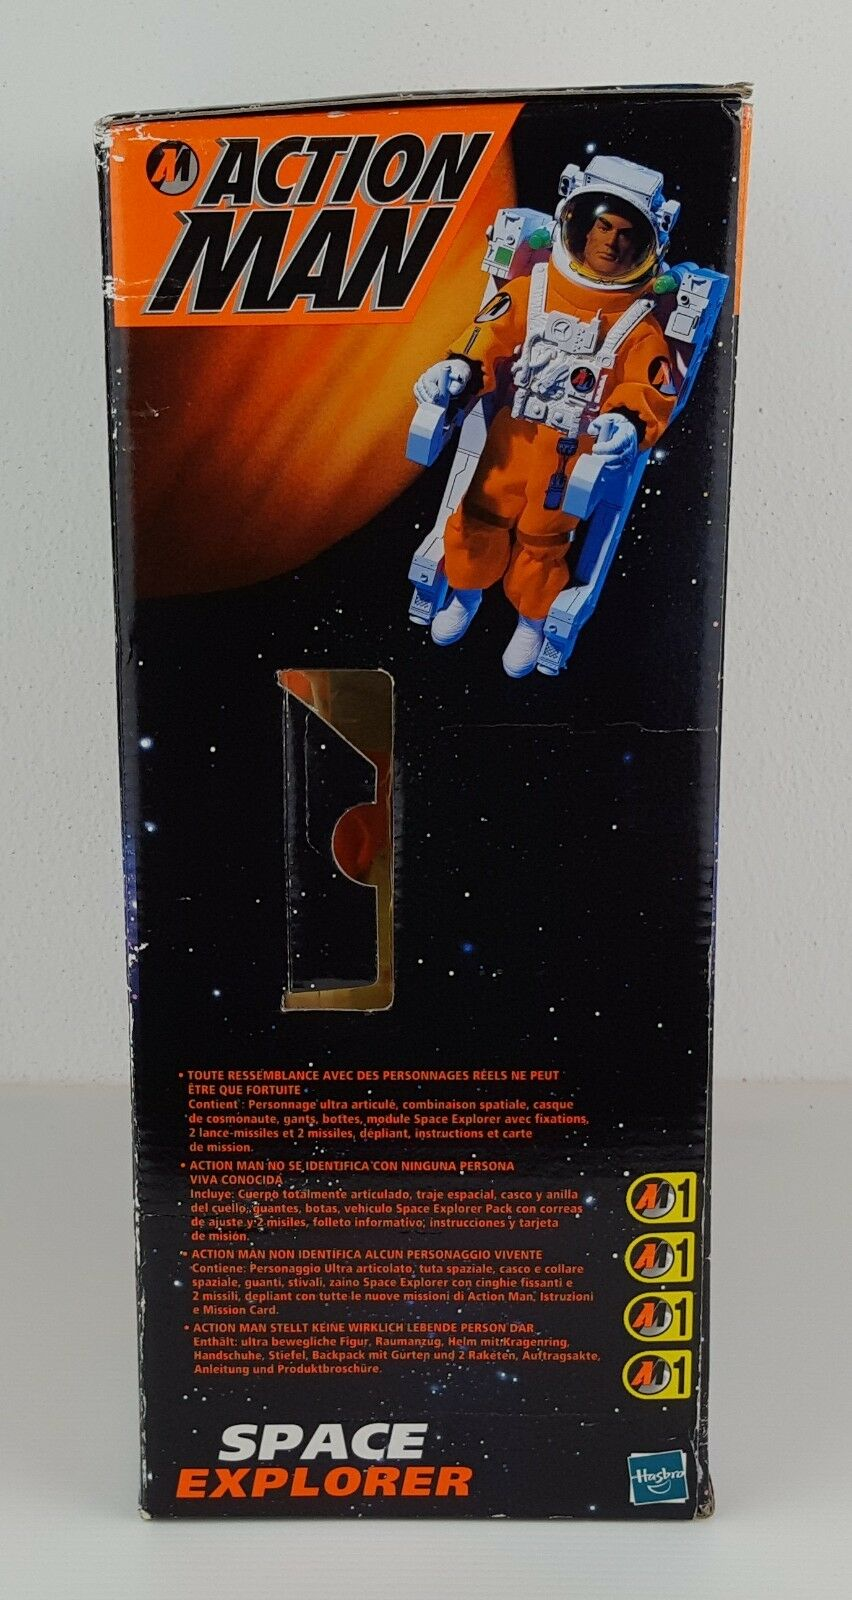 ACTION MAN ELECTRONIC ELECTRONIC ELECTRONIC SPACE EXPLORER - VINTAGE - NUOVO FACTORY SEALED a8c5b0